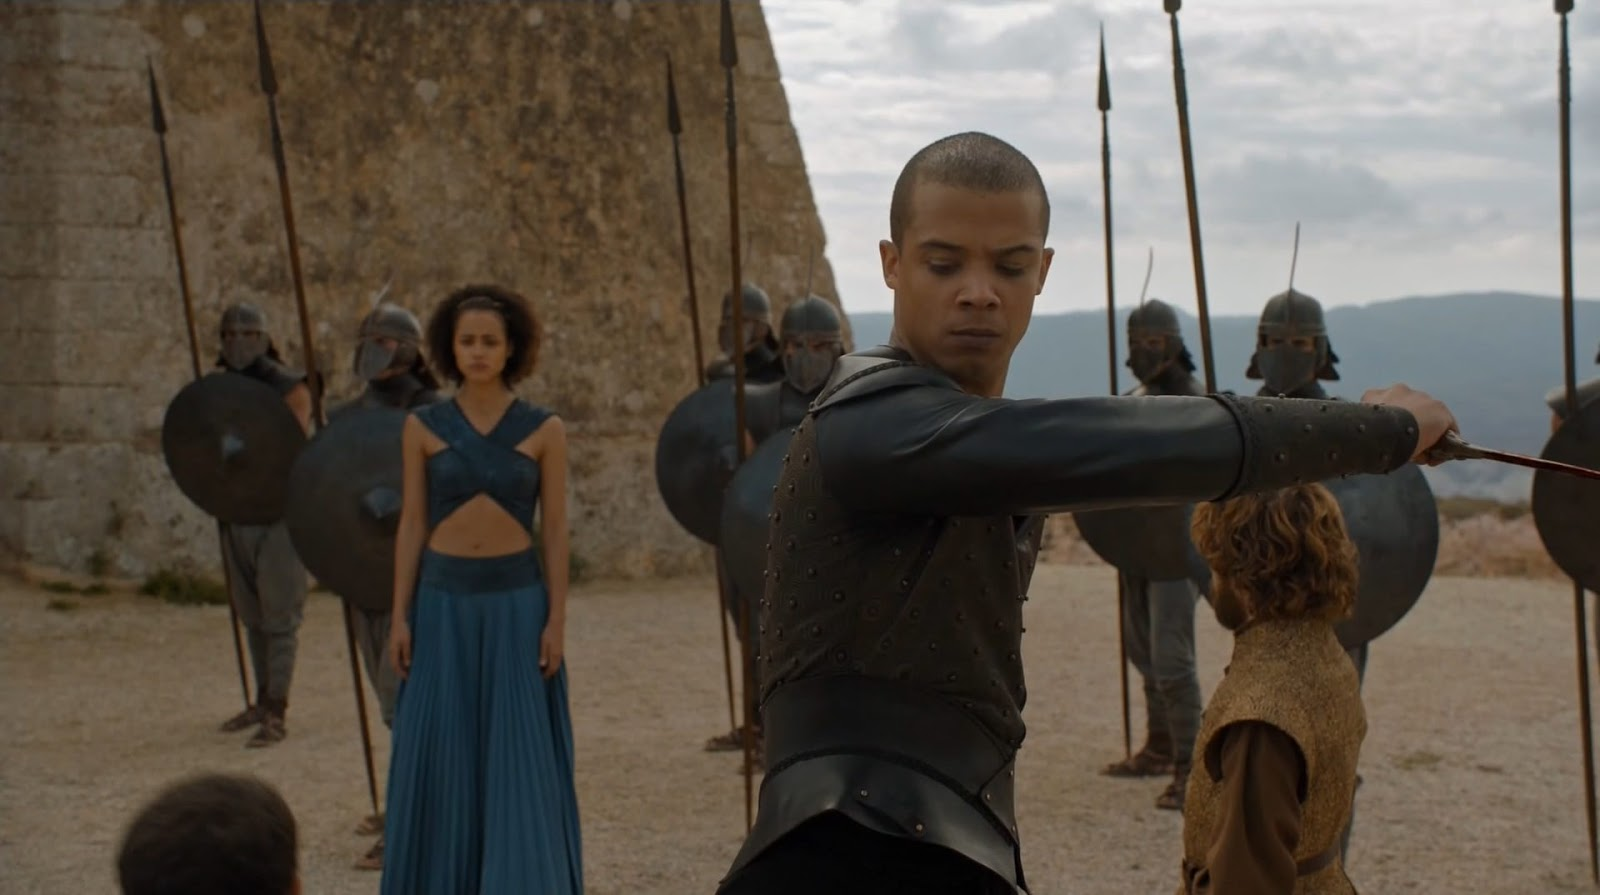 Grey Worm on Game of Thrones